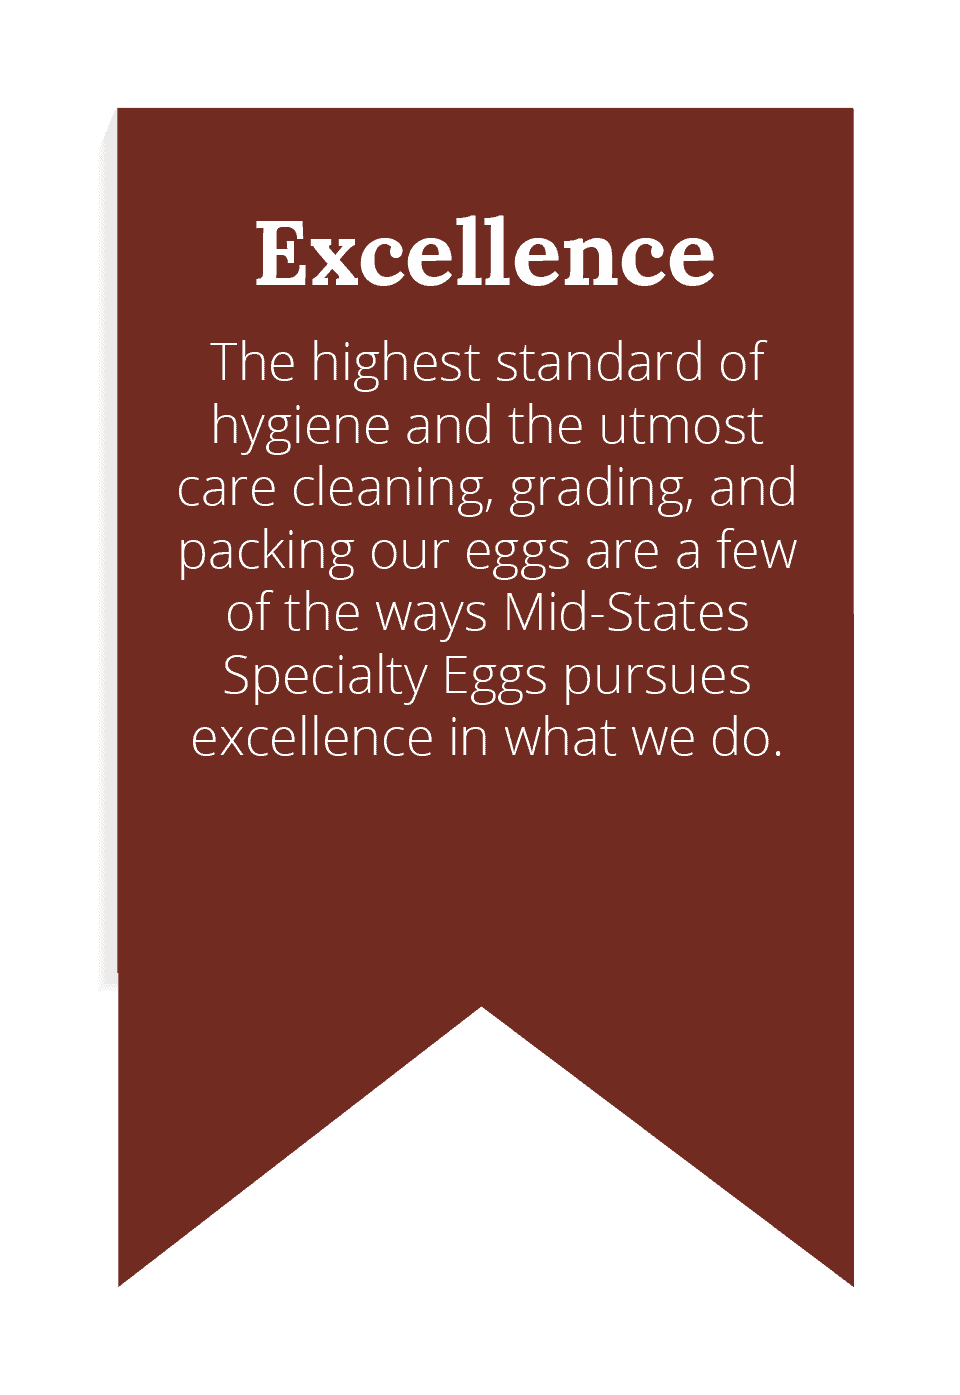 Speciality Egg Products in Missouri